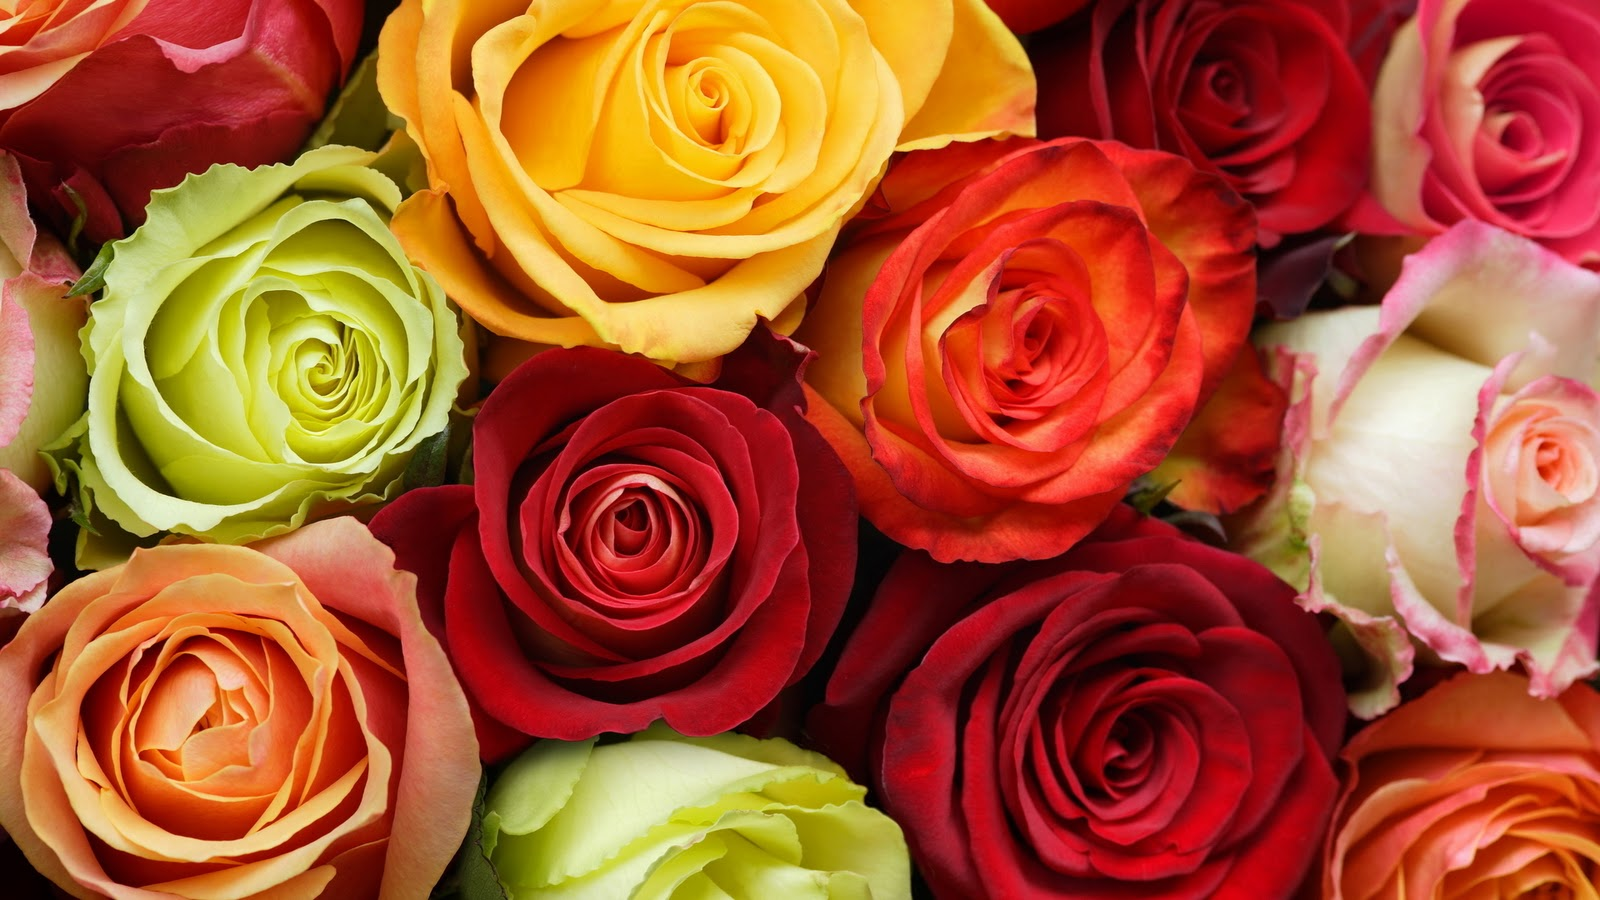 Wallpapers photo art wallpaper flowers roses for Dual color roses